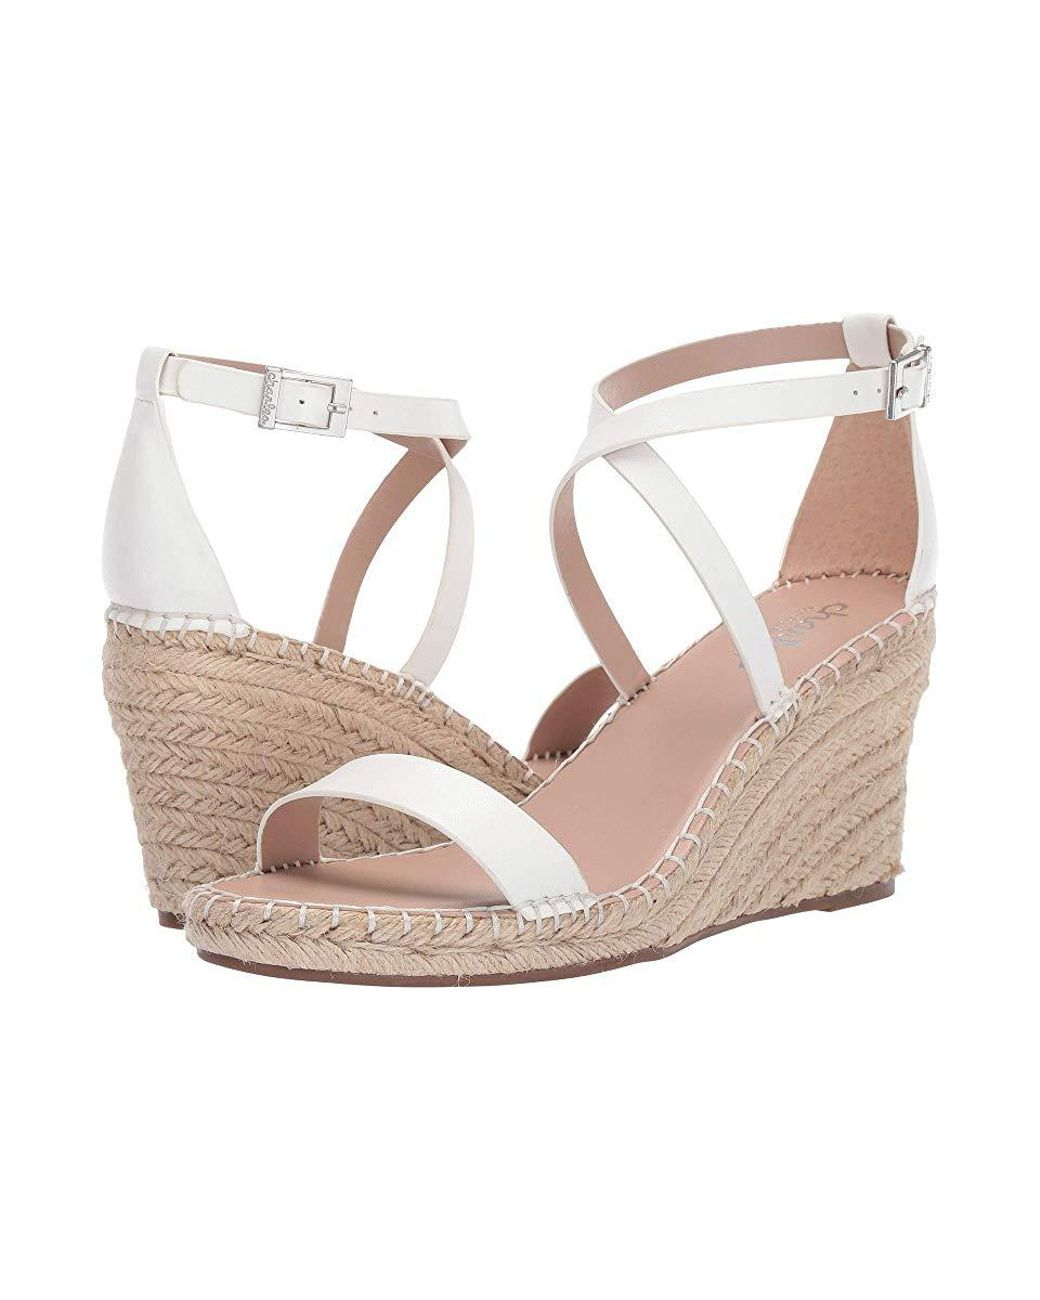 d6e58bc6eb Charles David Nola Wedge Sandal (white) Wedge Shoes in White - Save 62% -  Lyst